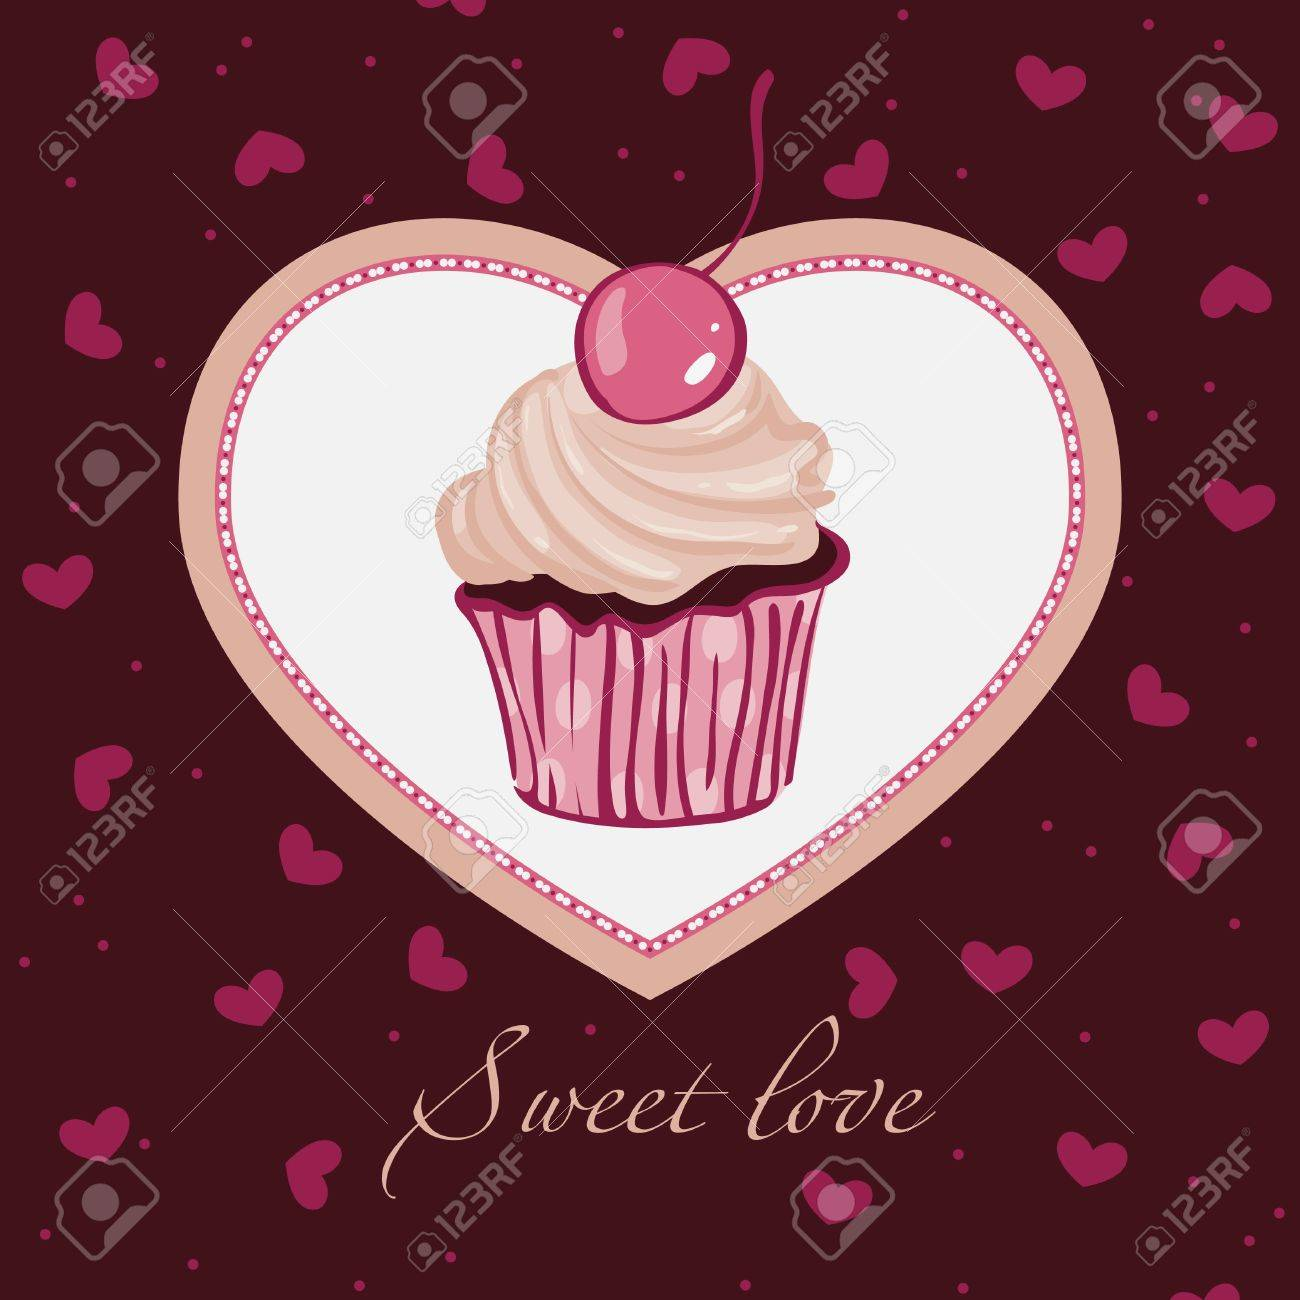 Sweet love. For themes like love, valentine's day, holidays. Vector illustration. Stock Vector - 9843392